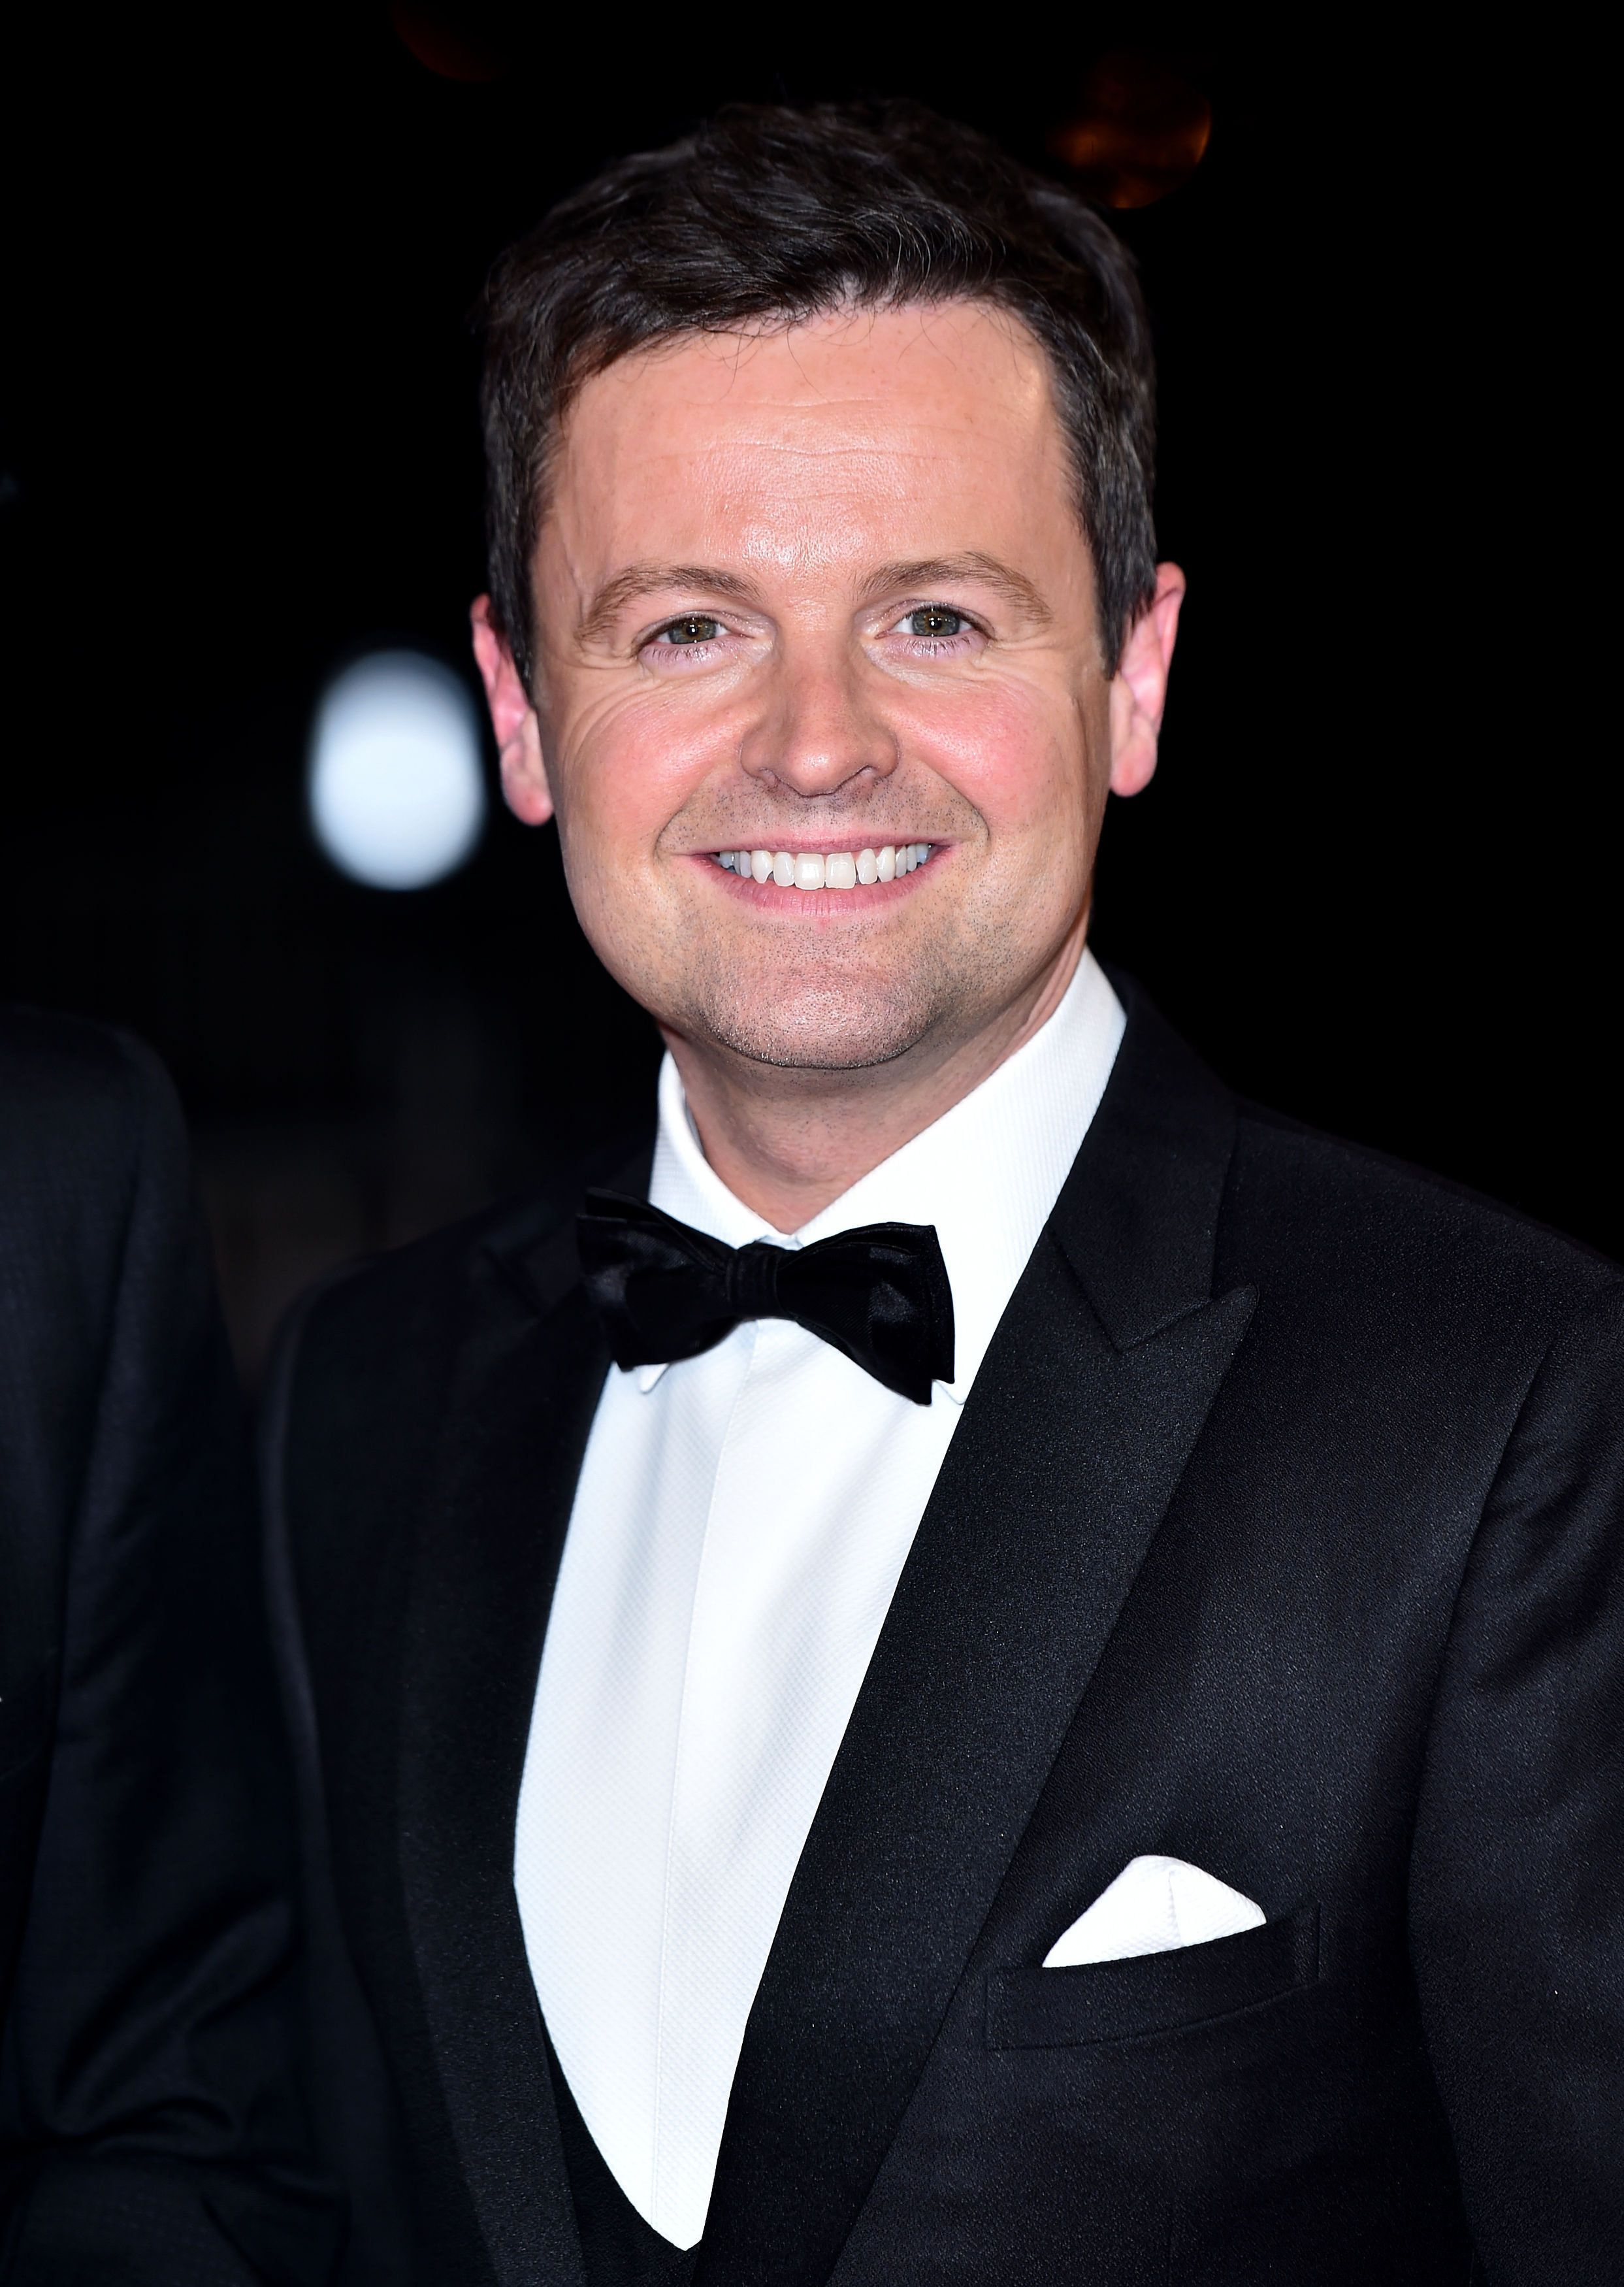 Declan Donnelly Admits He Barely Slept Before Solo 'Takeaway' Stint As He Thanks Fans For